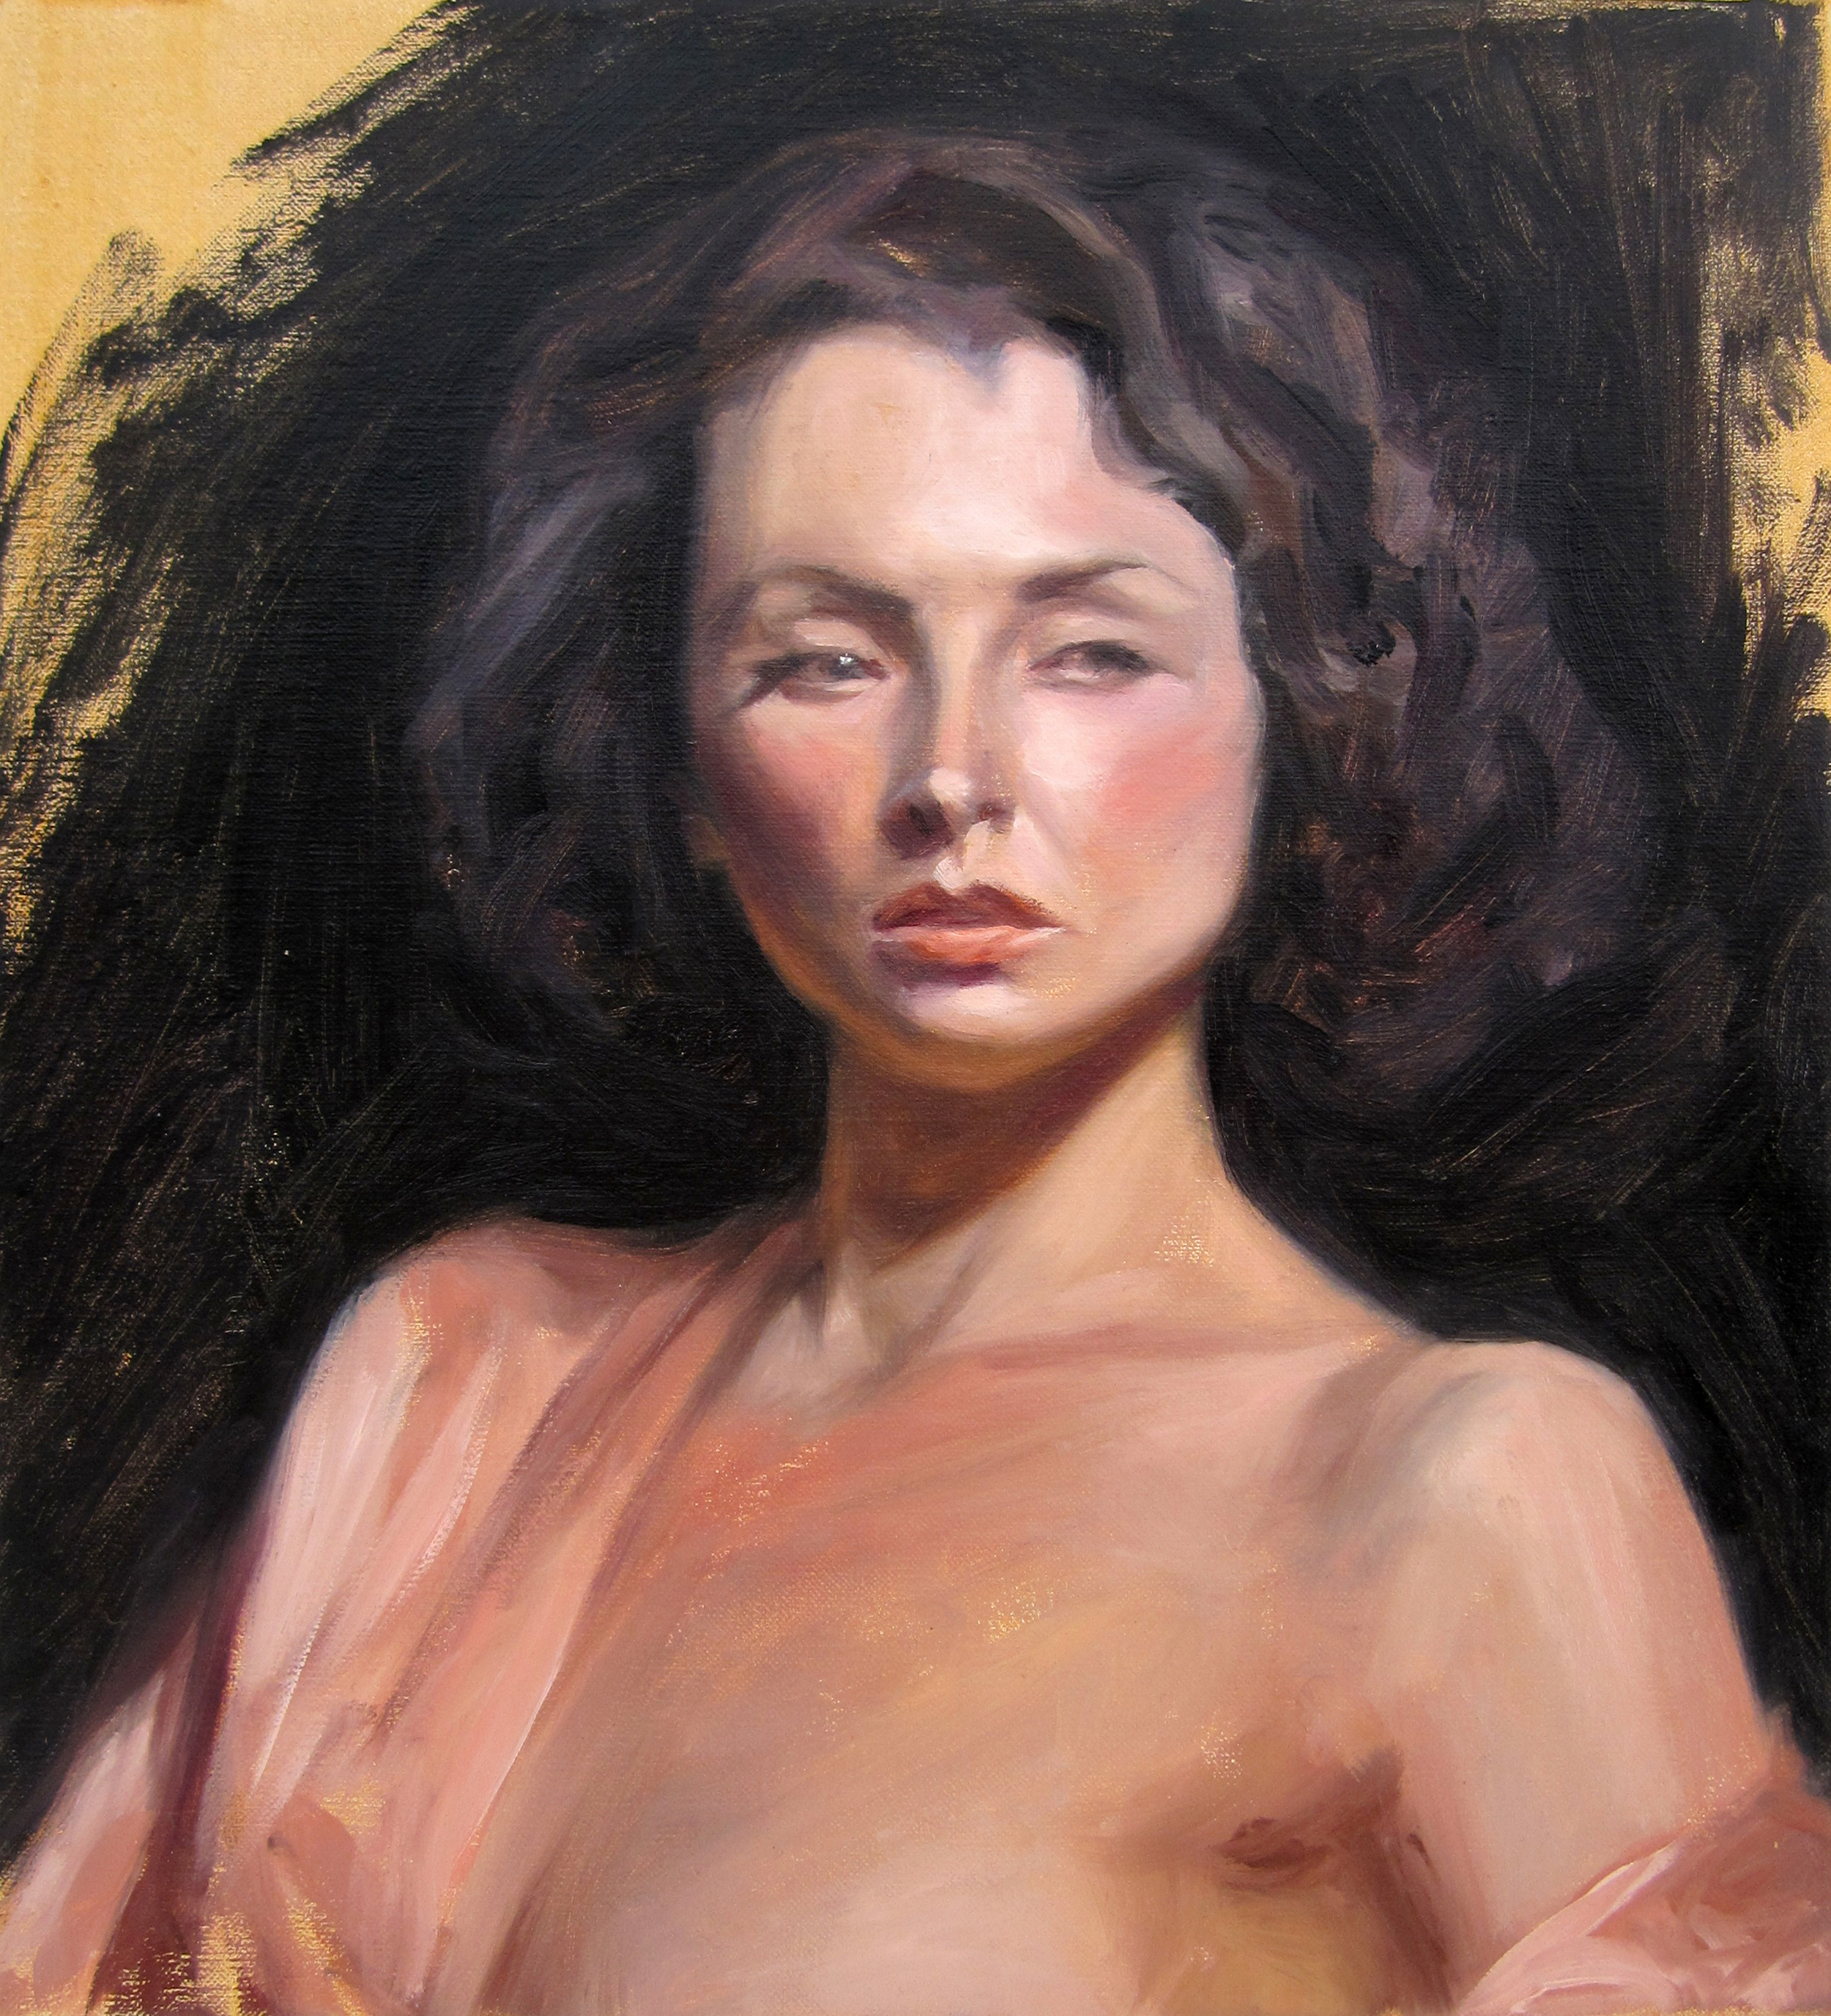 """Dalilah Study   11"""" x 10""""  Oil on Linen   SOLD"""